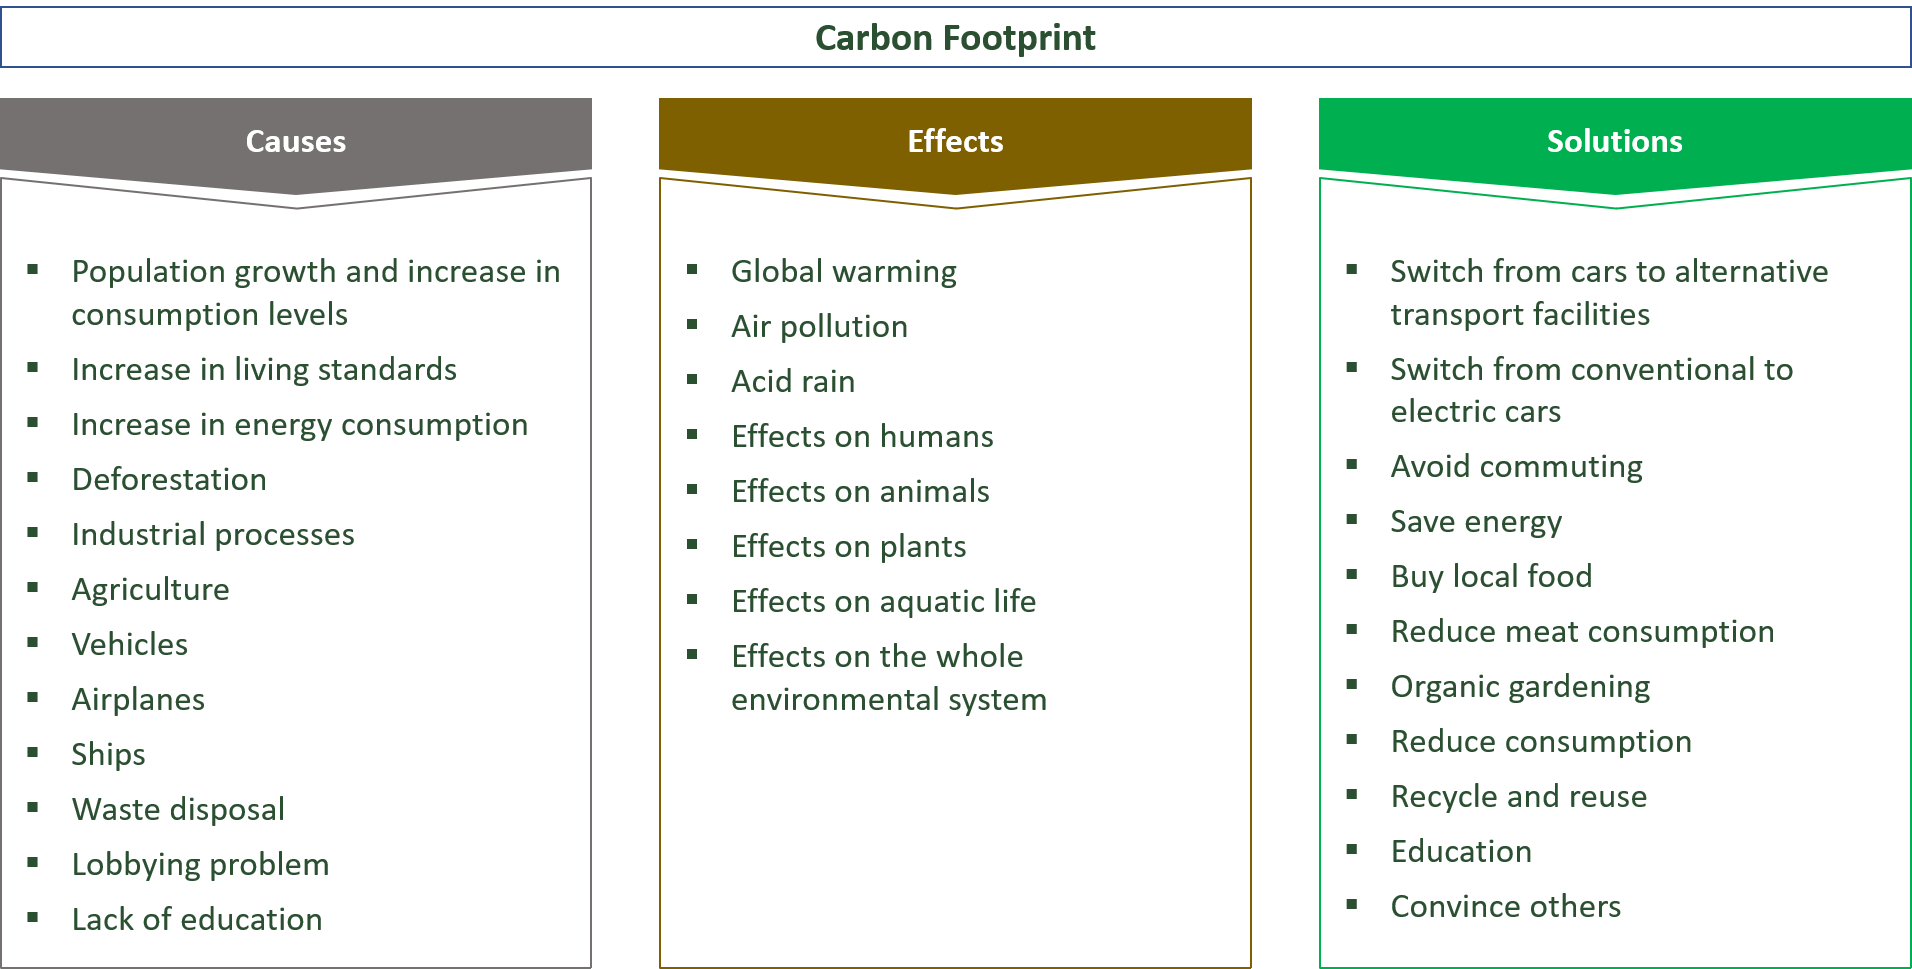 causes, effects and solutions for the carbon footprint